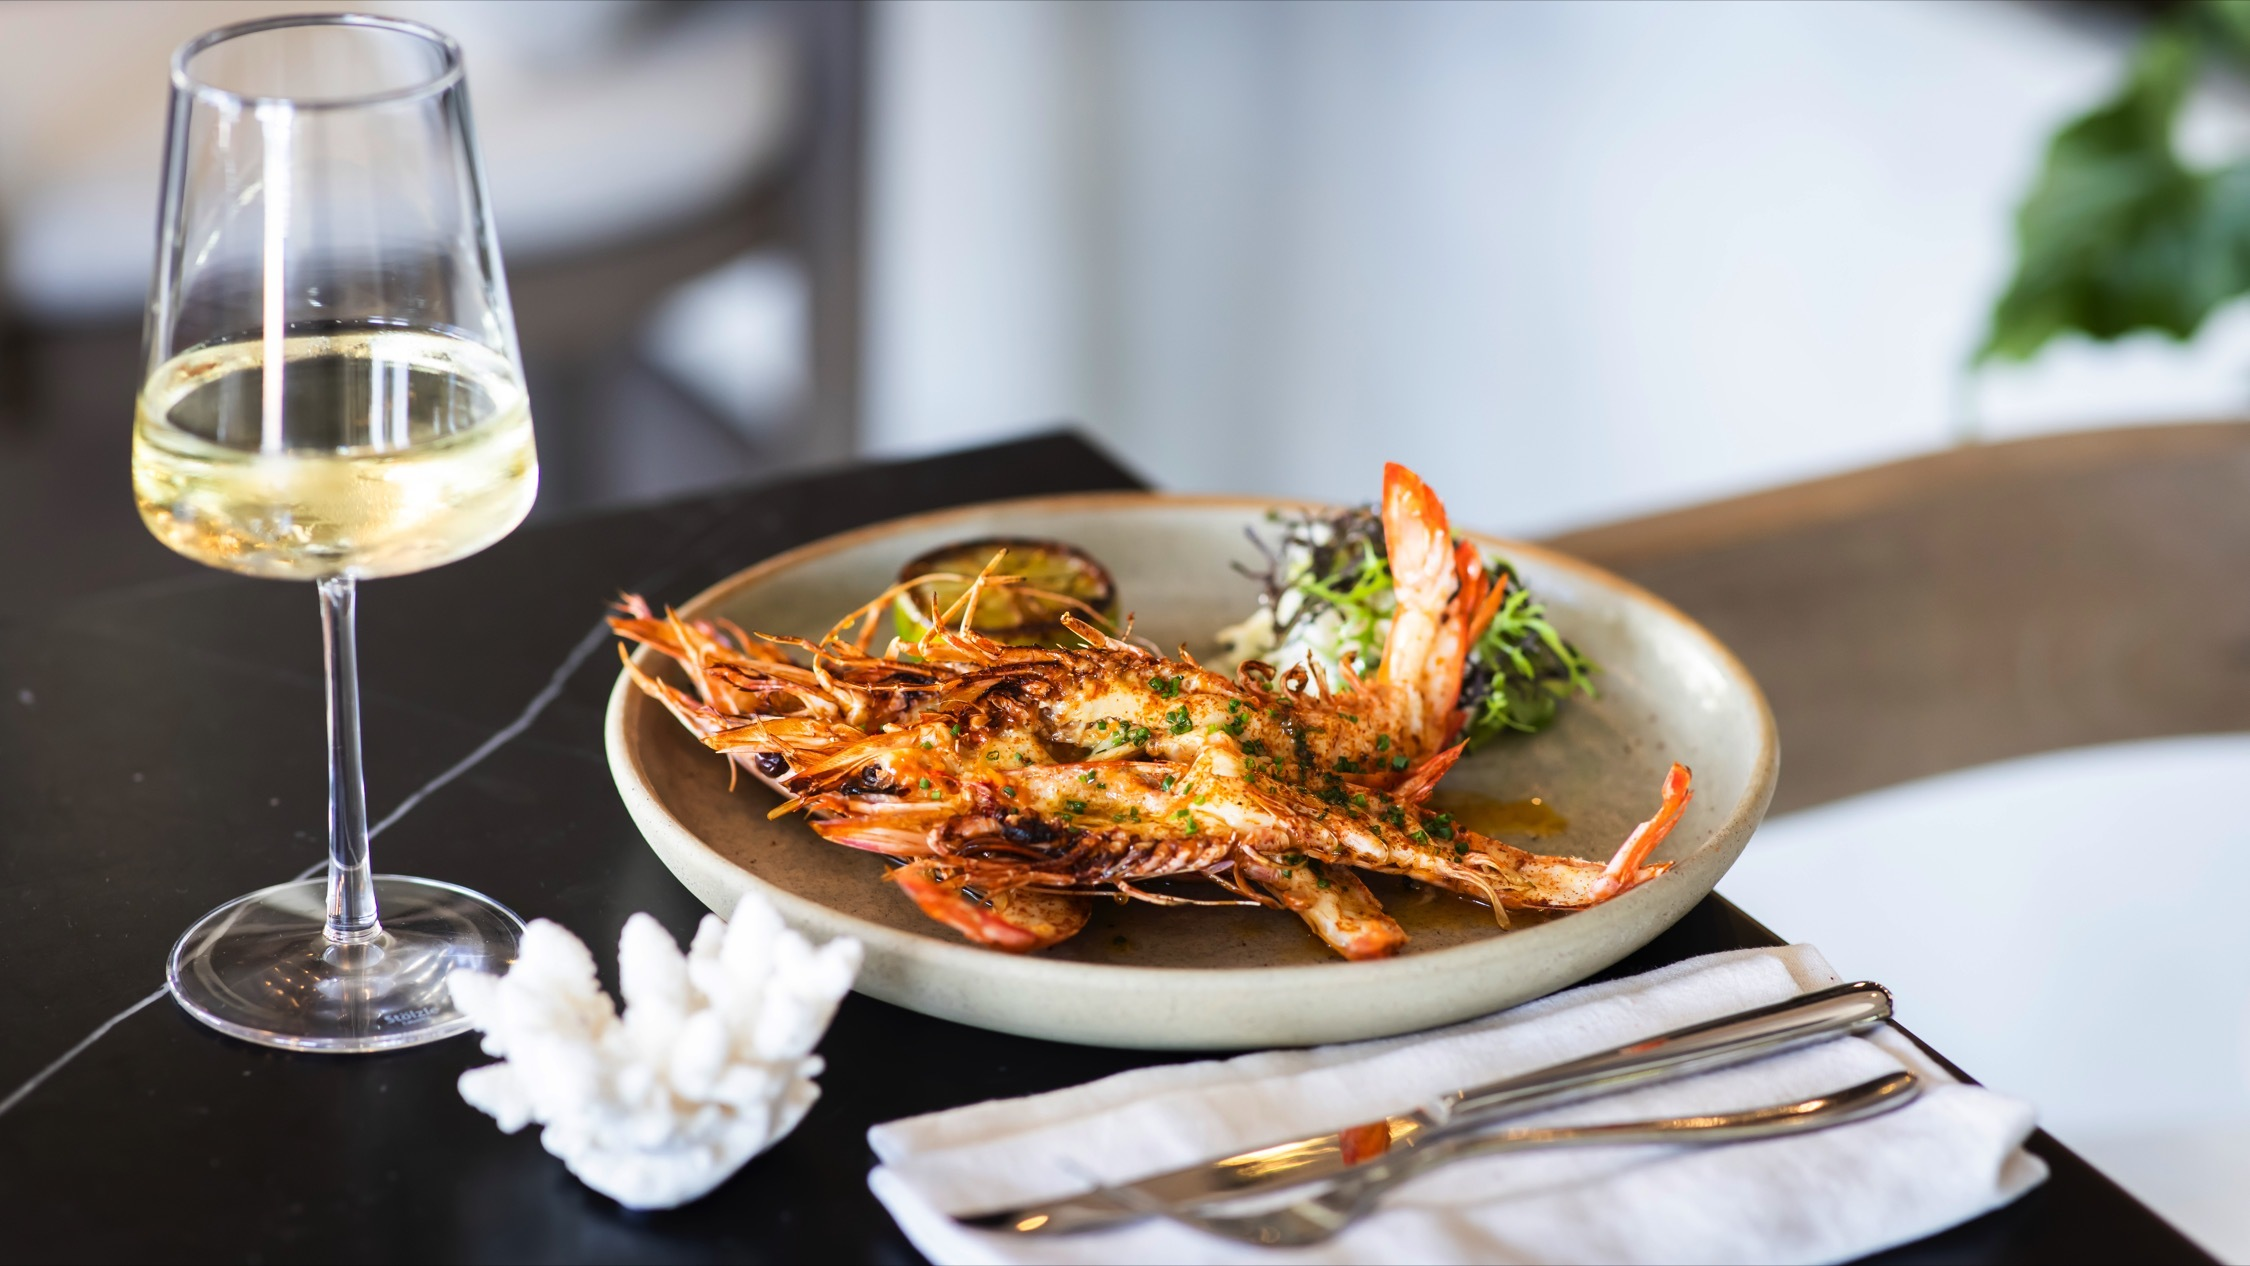 Estate Coogee, prawns, food overview, seafood